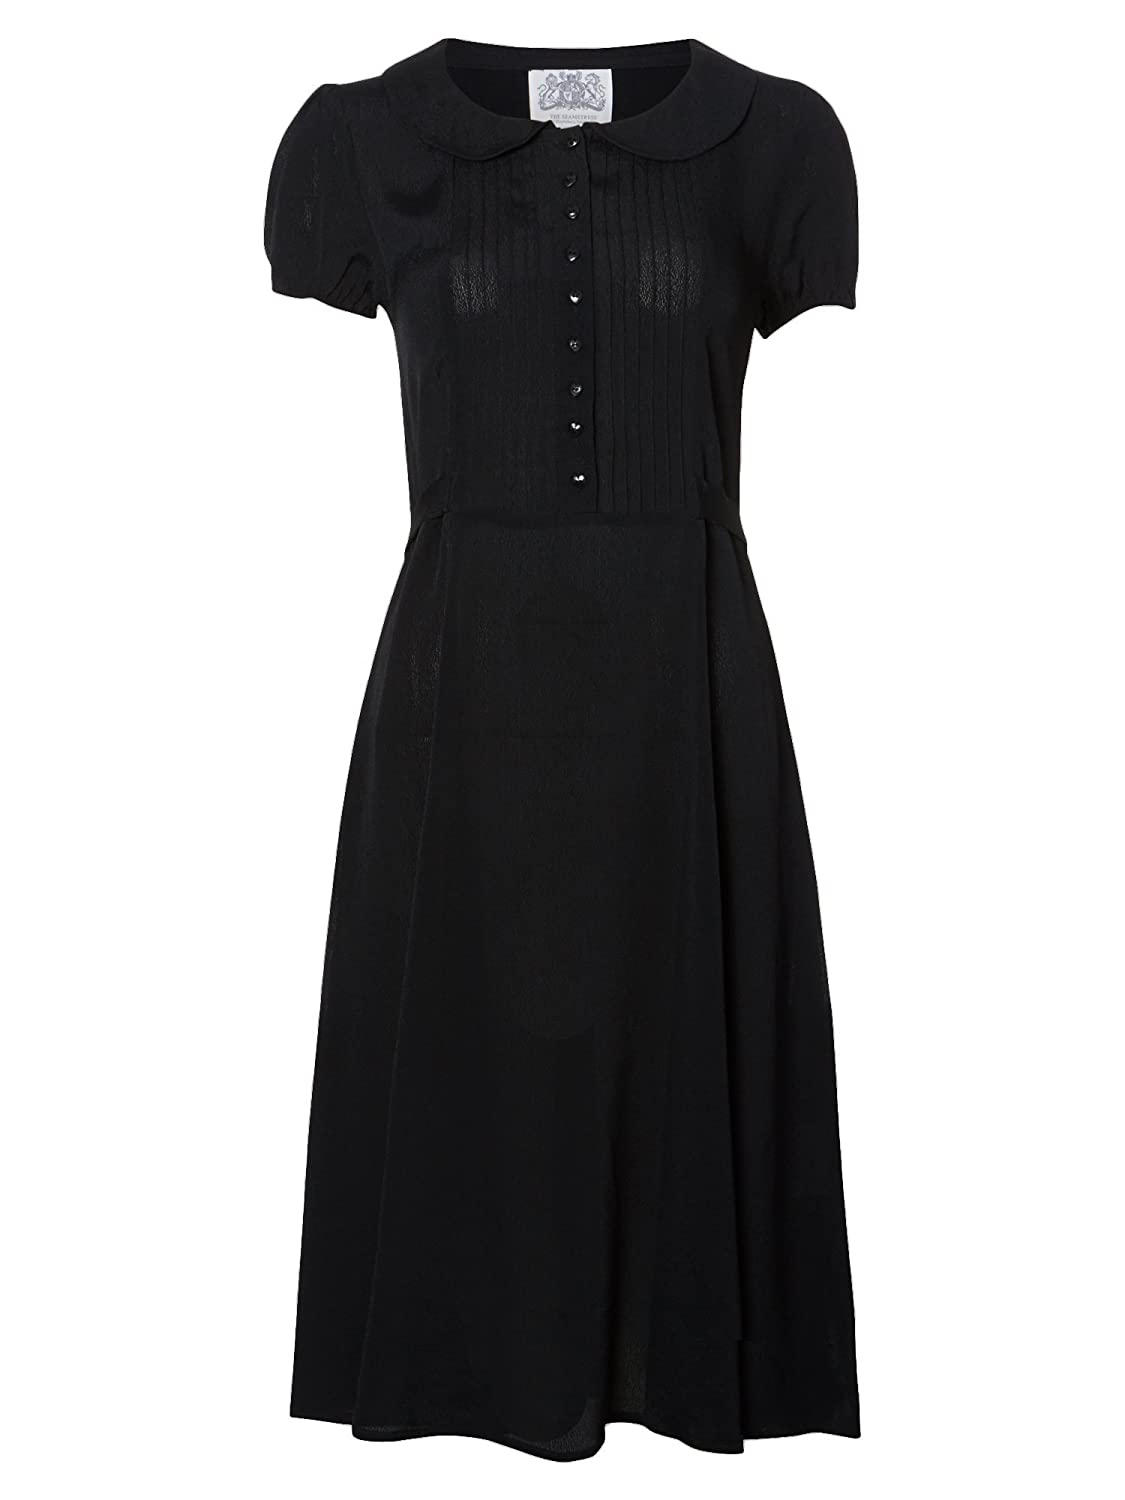 Agent Peggy Carter Costume, Dress, Hats 1940s Authentic Vintage Inspired Dorothy Dress in Black £79.00 AT vintagedancer.com